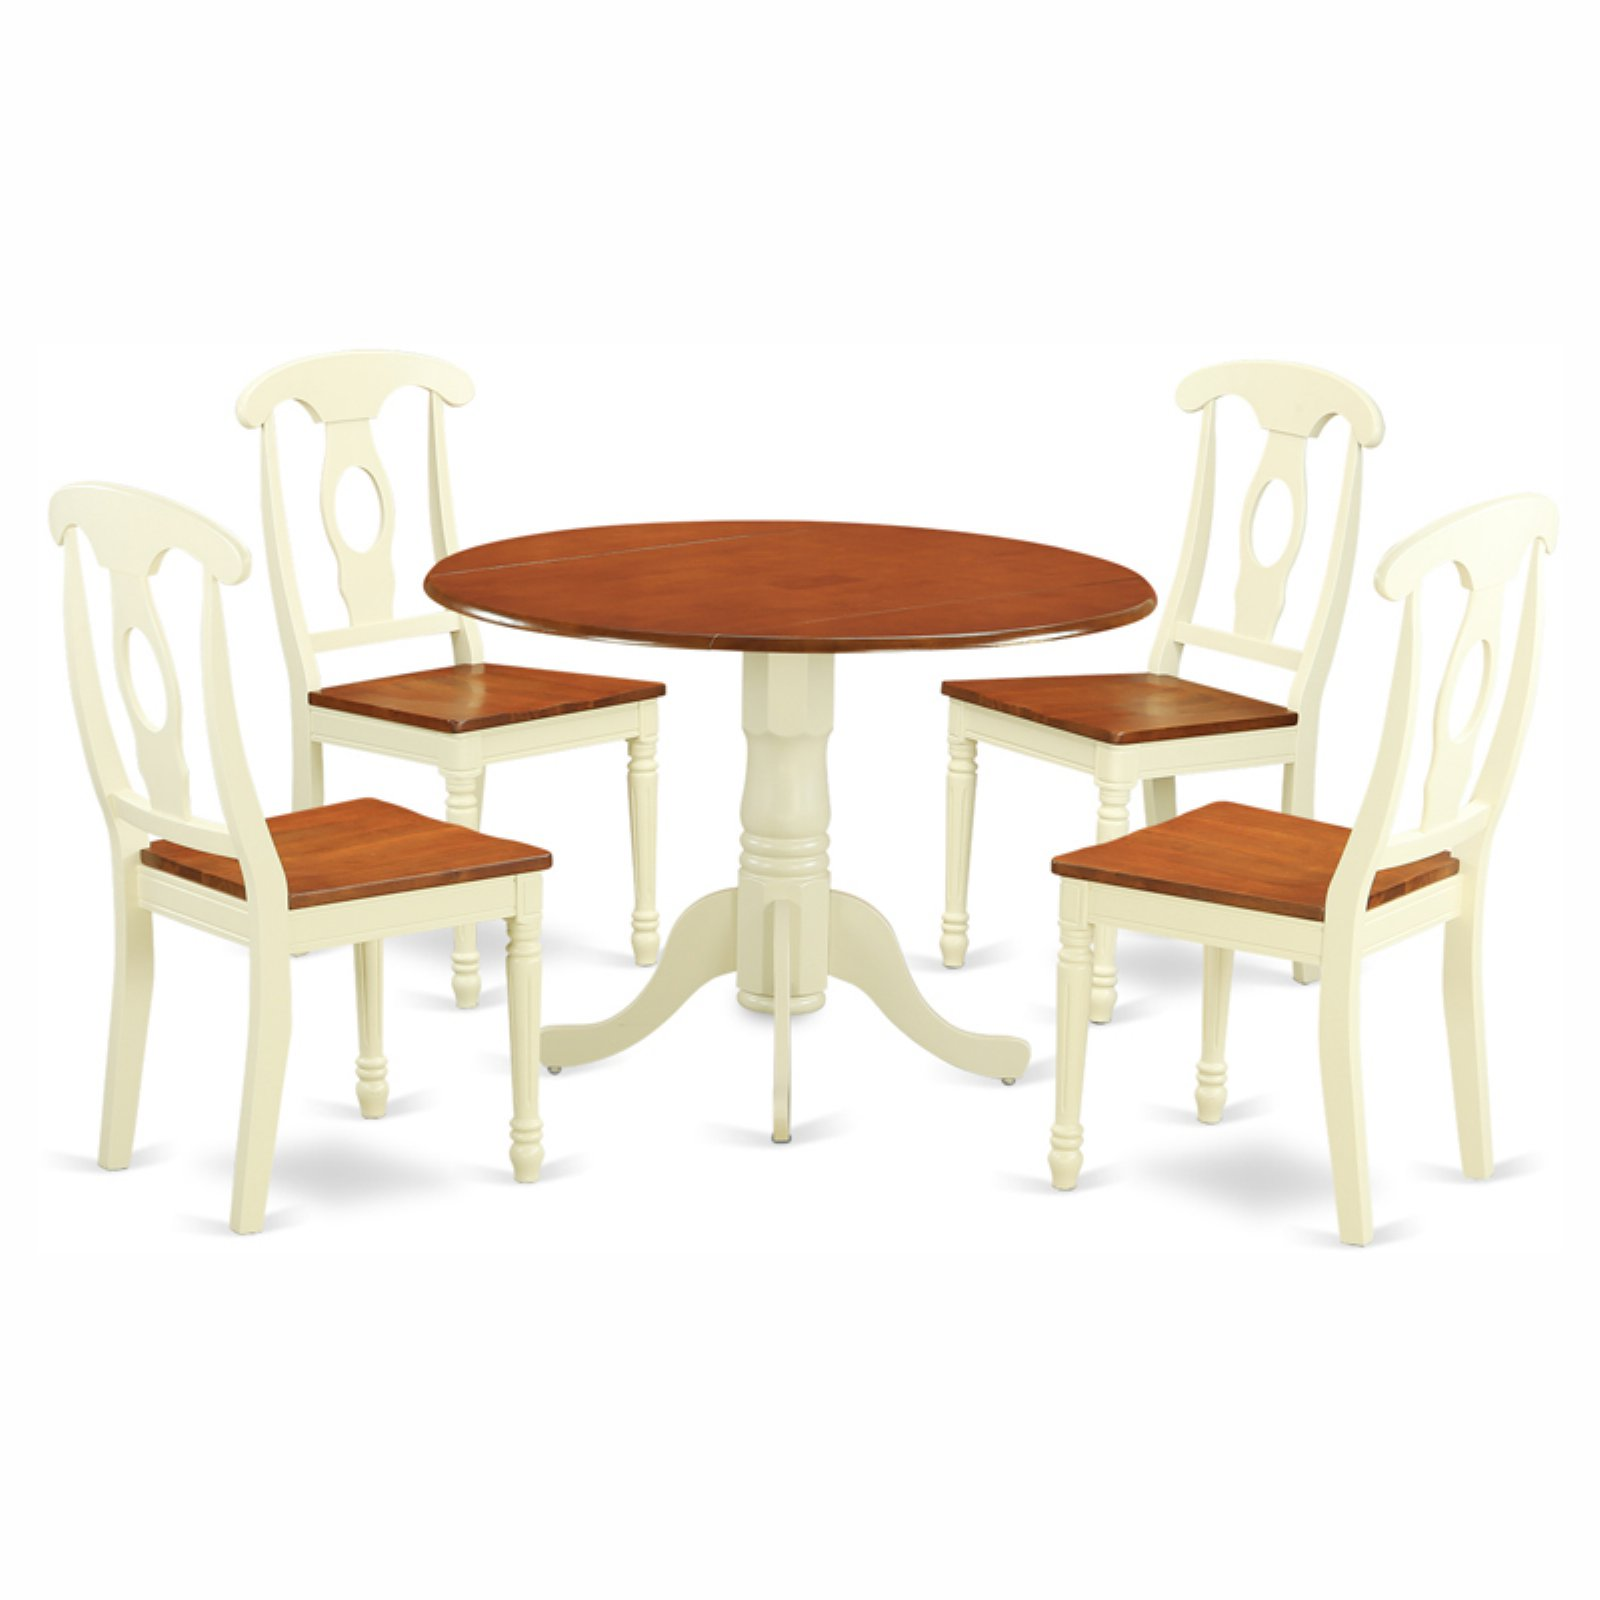 East West Furniture Dublin 5 Piece Dining Table Set with Kenley Wooden Seat Chairs